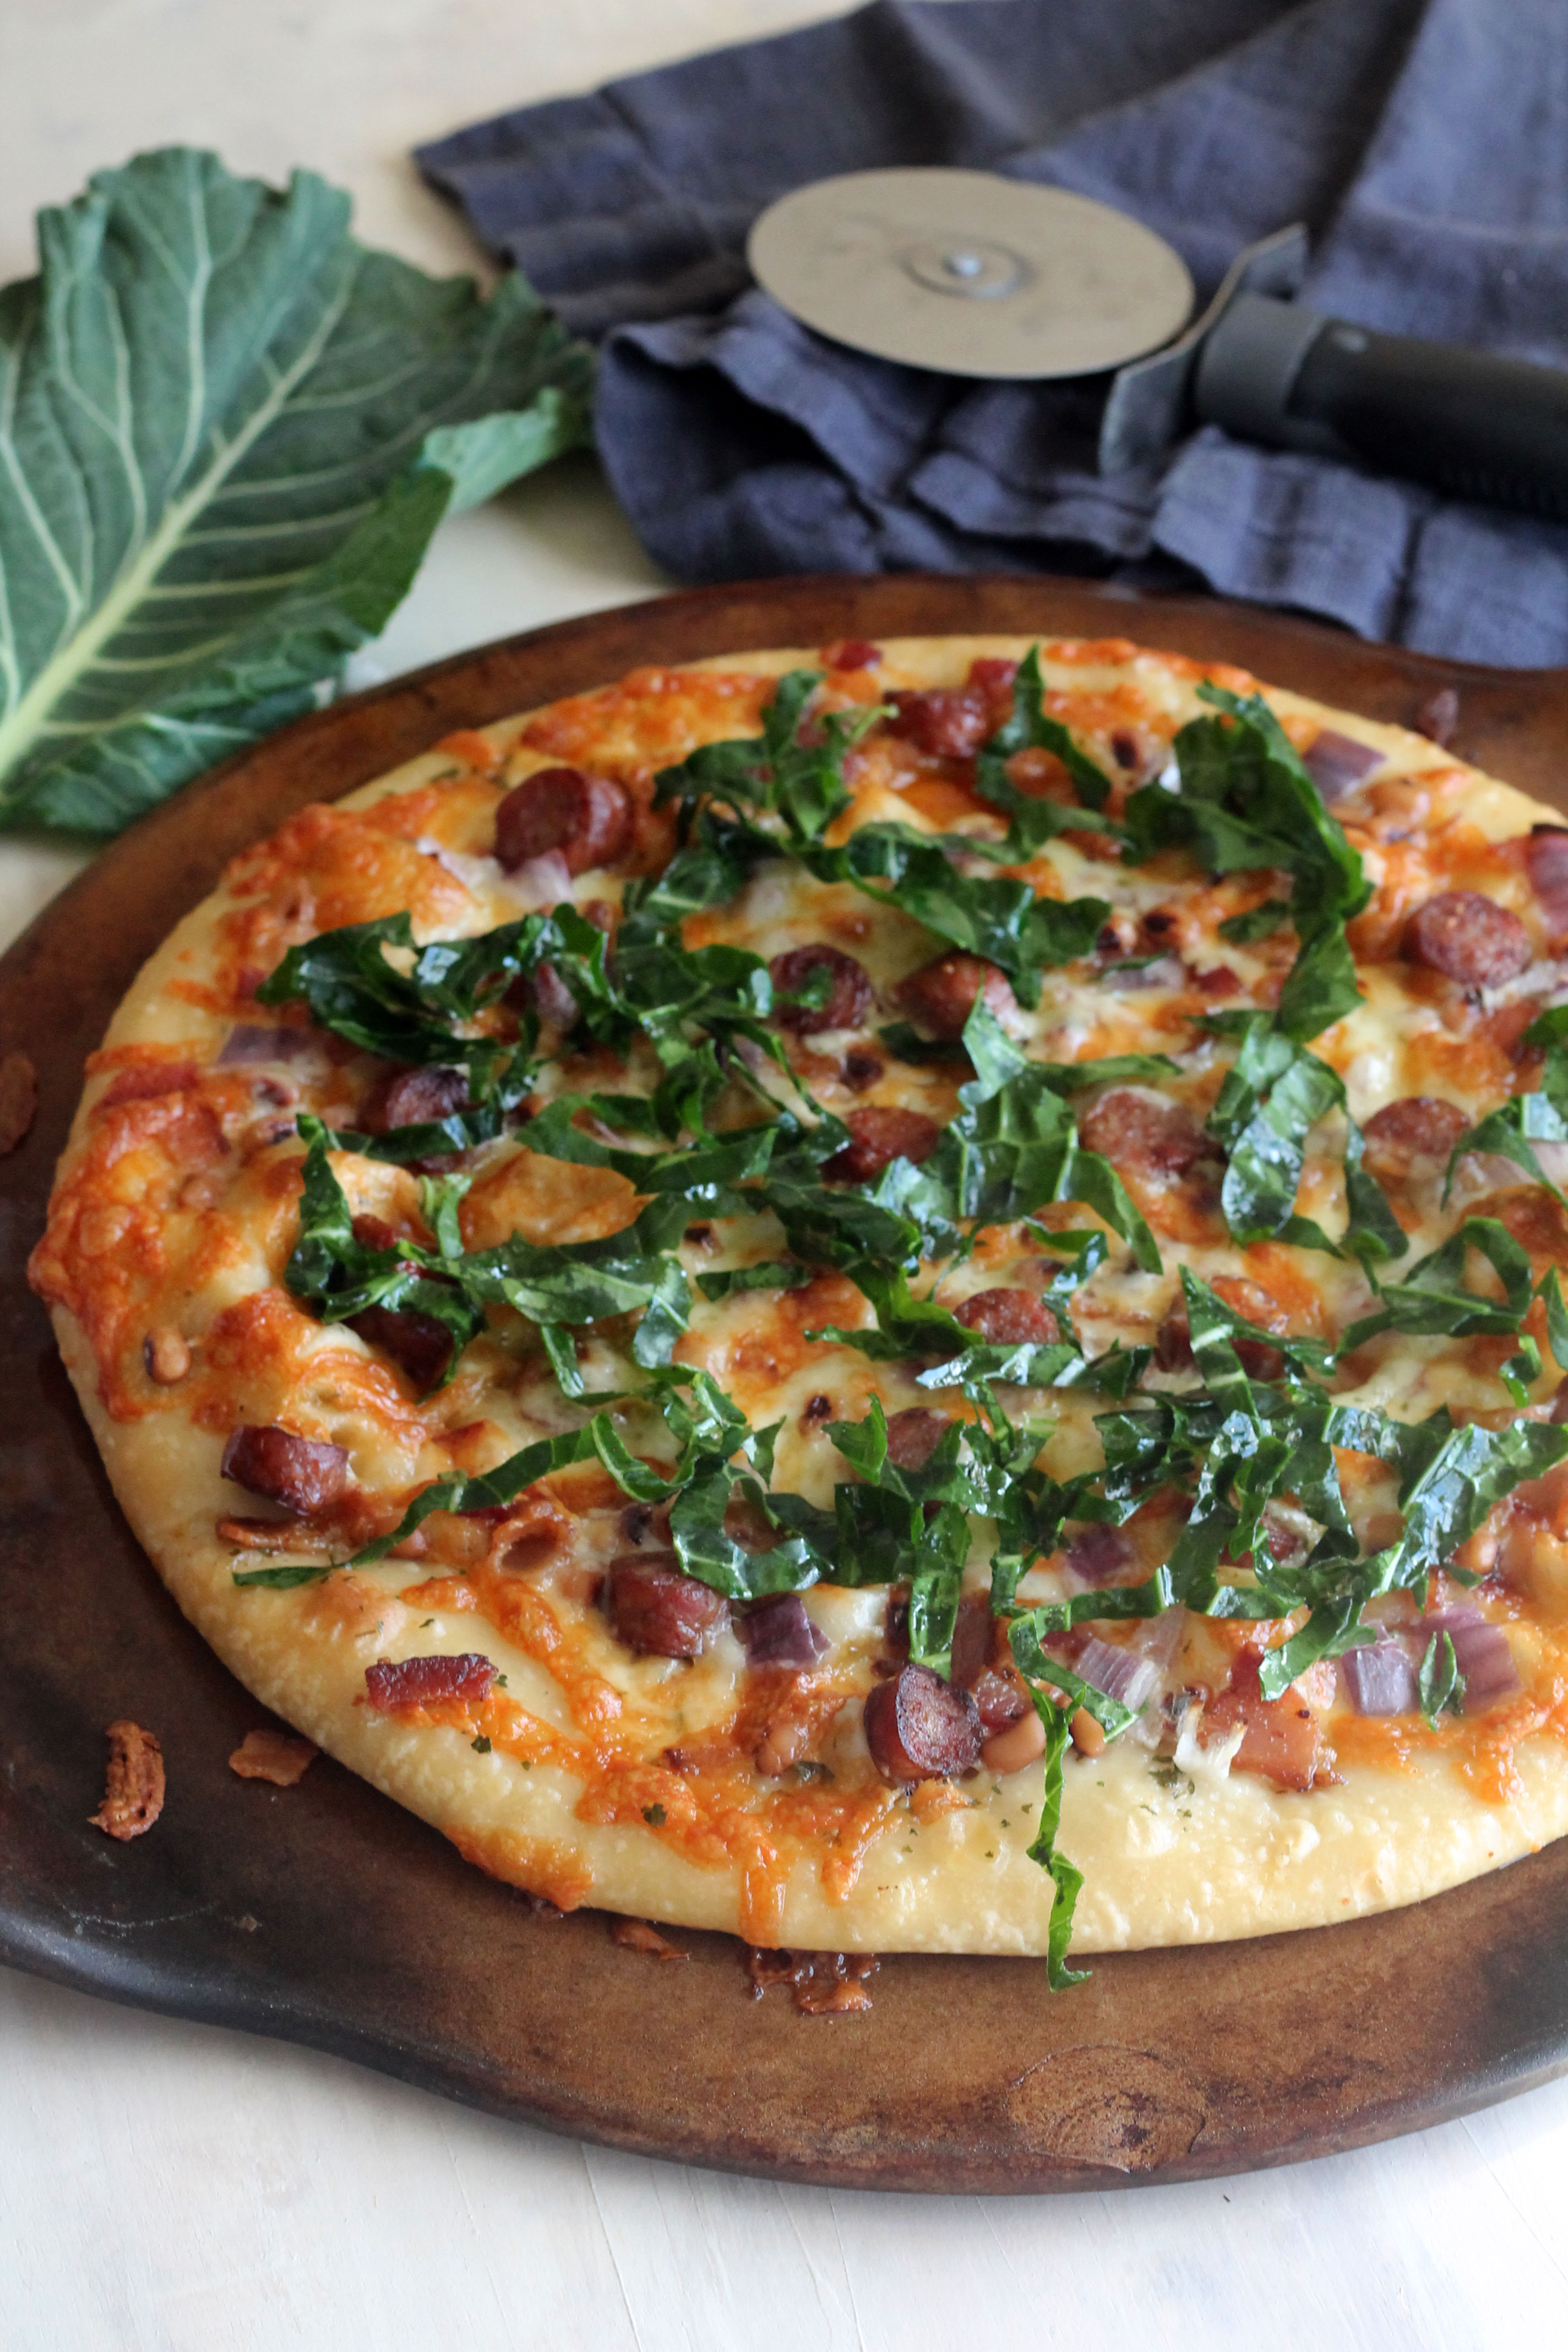 Black Eyed Peas, Collard Greens, and Sausage Pizza to bring good luck in the new year